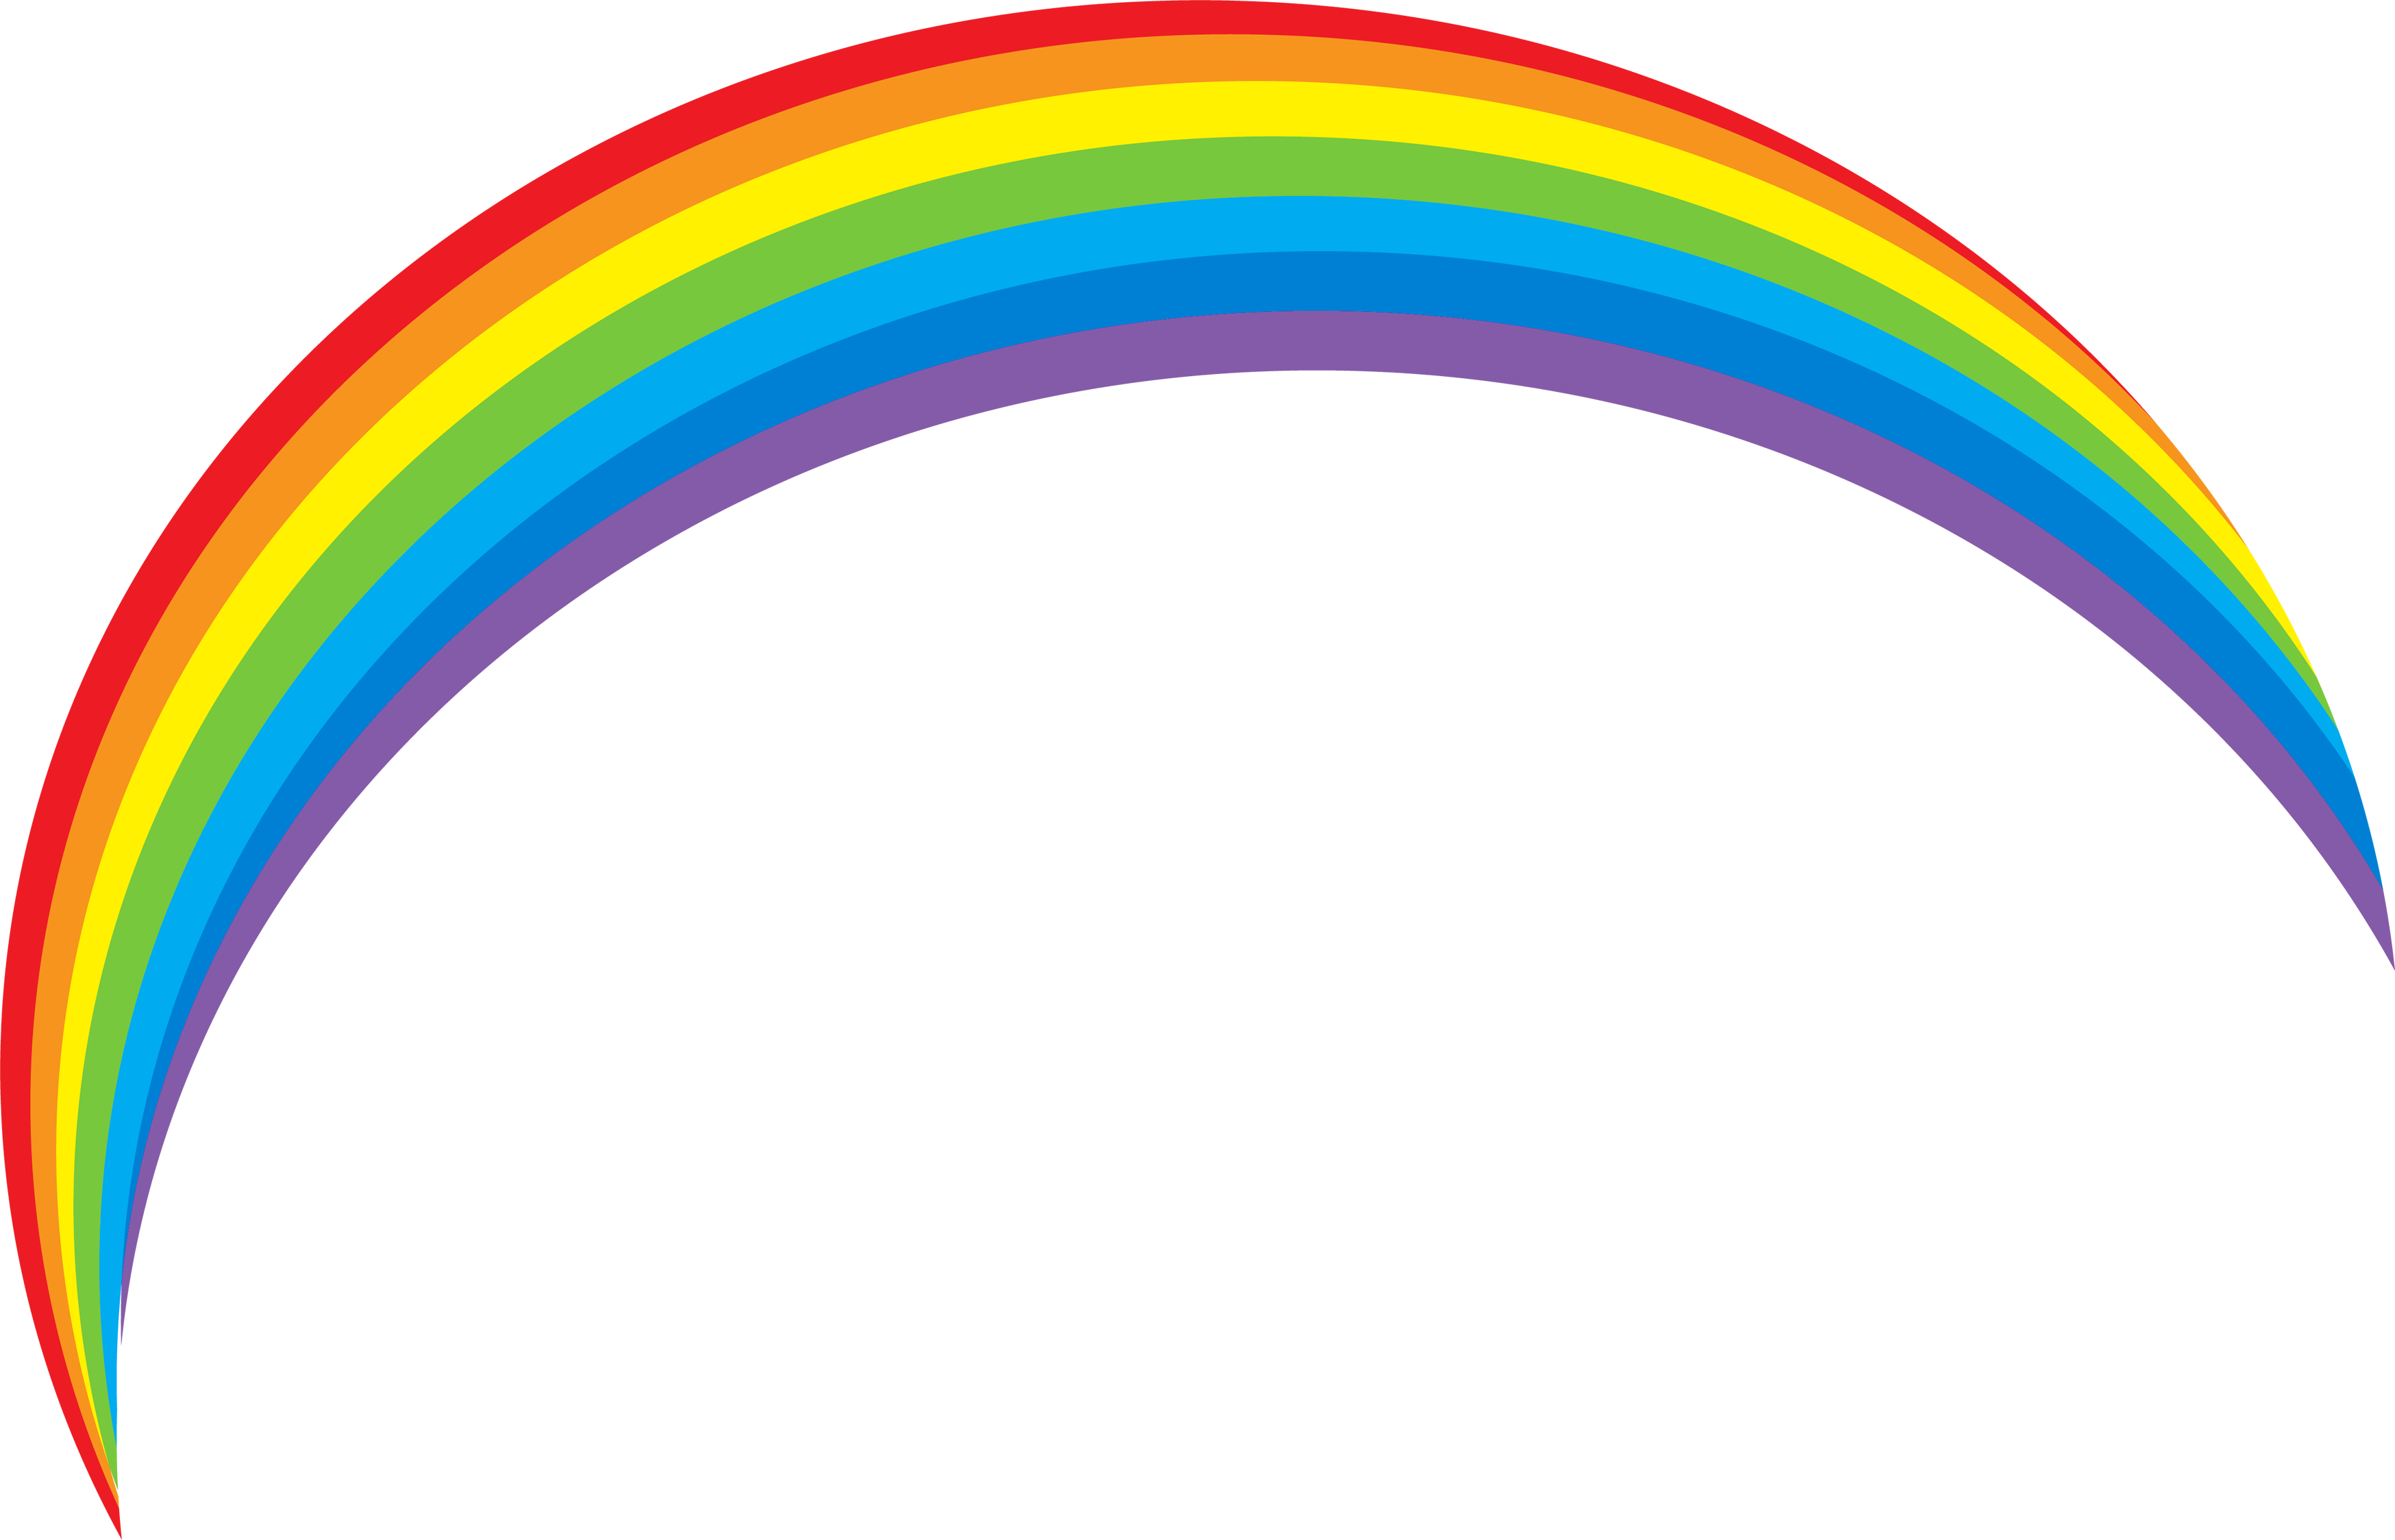 Rainbow PNG images free download.